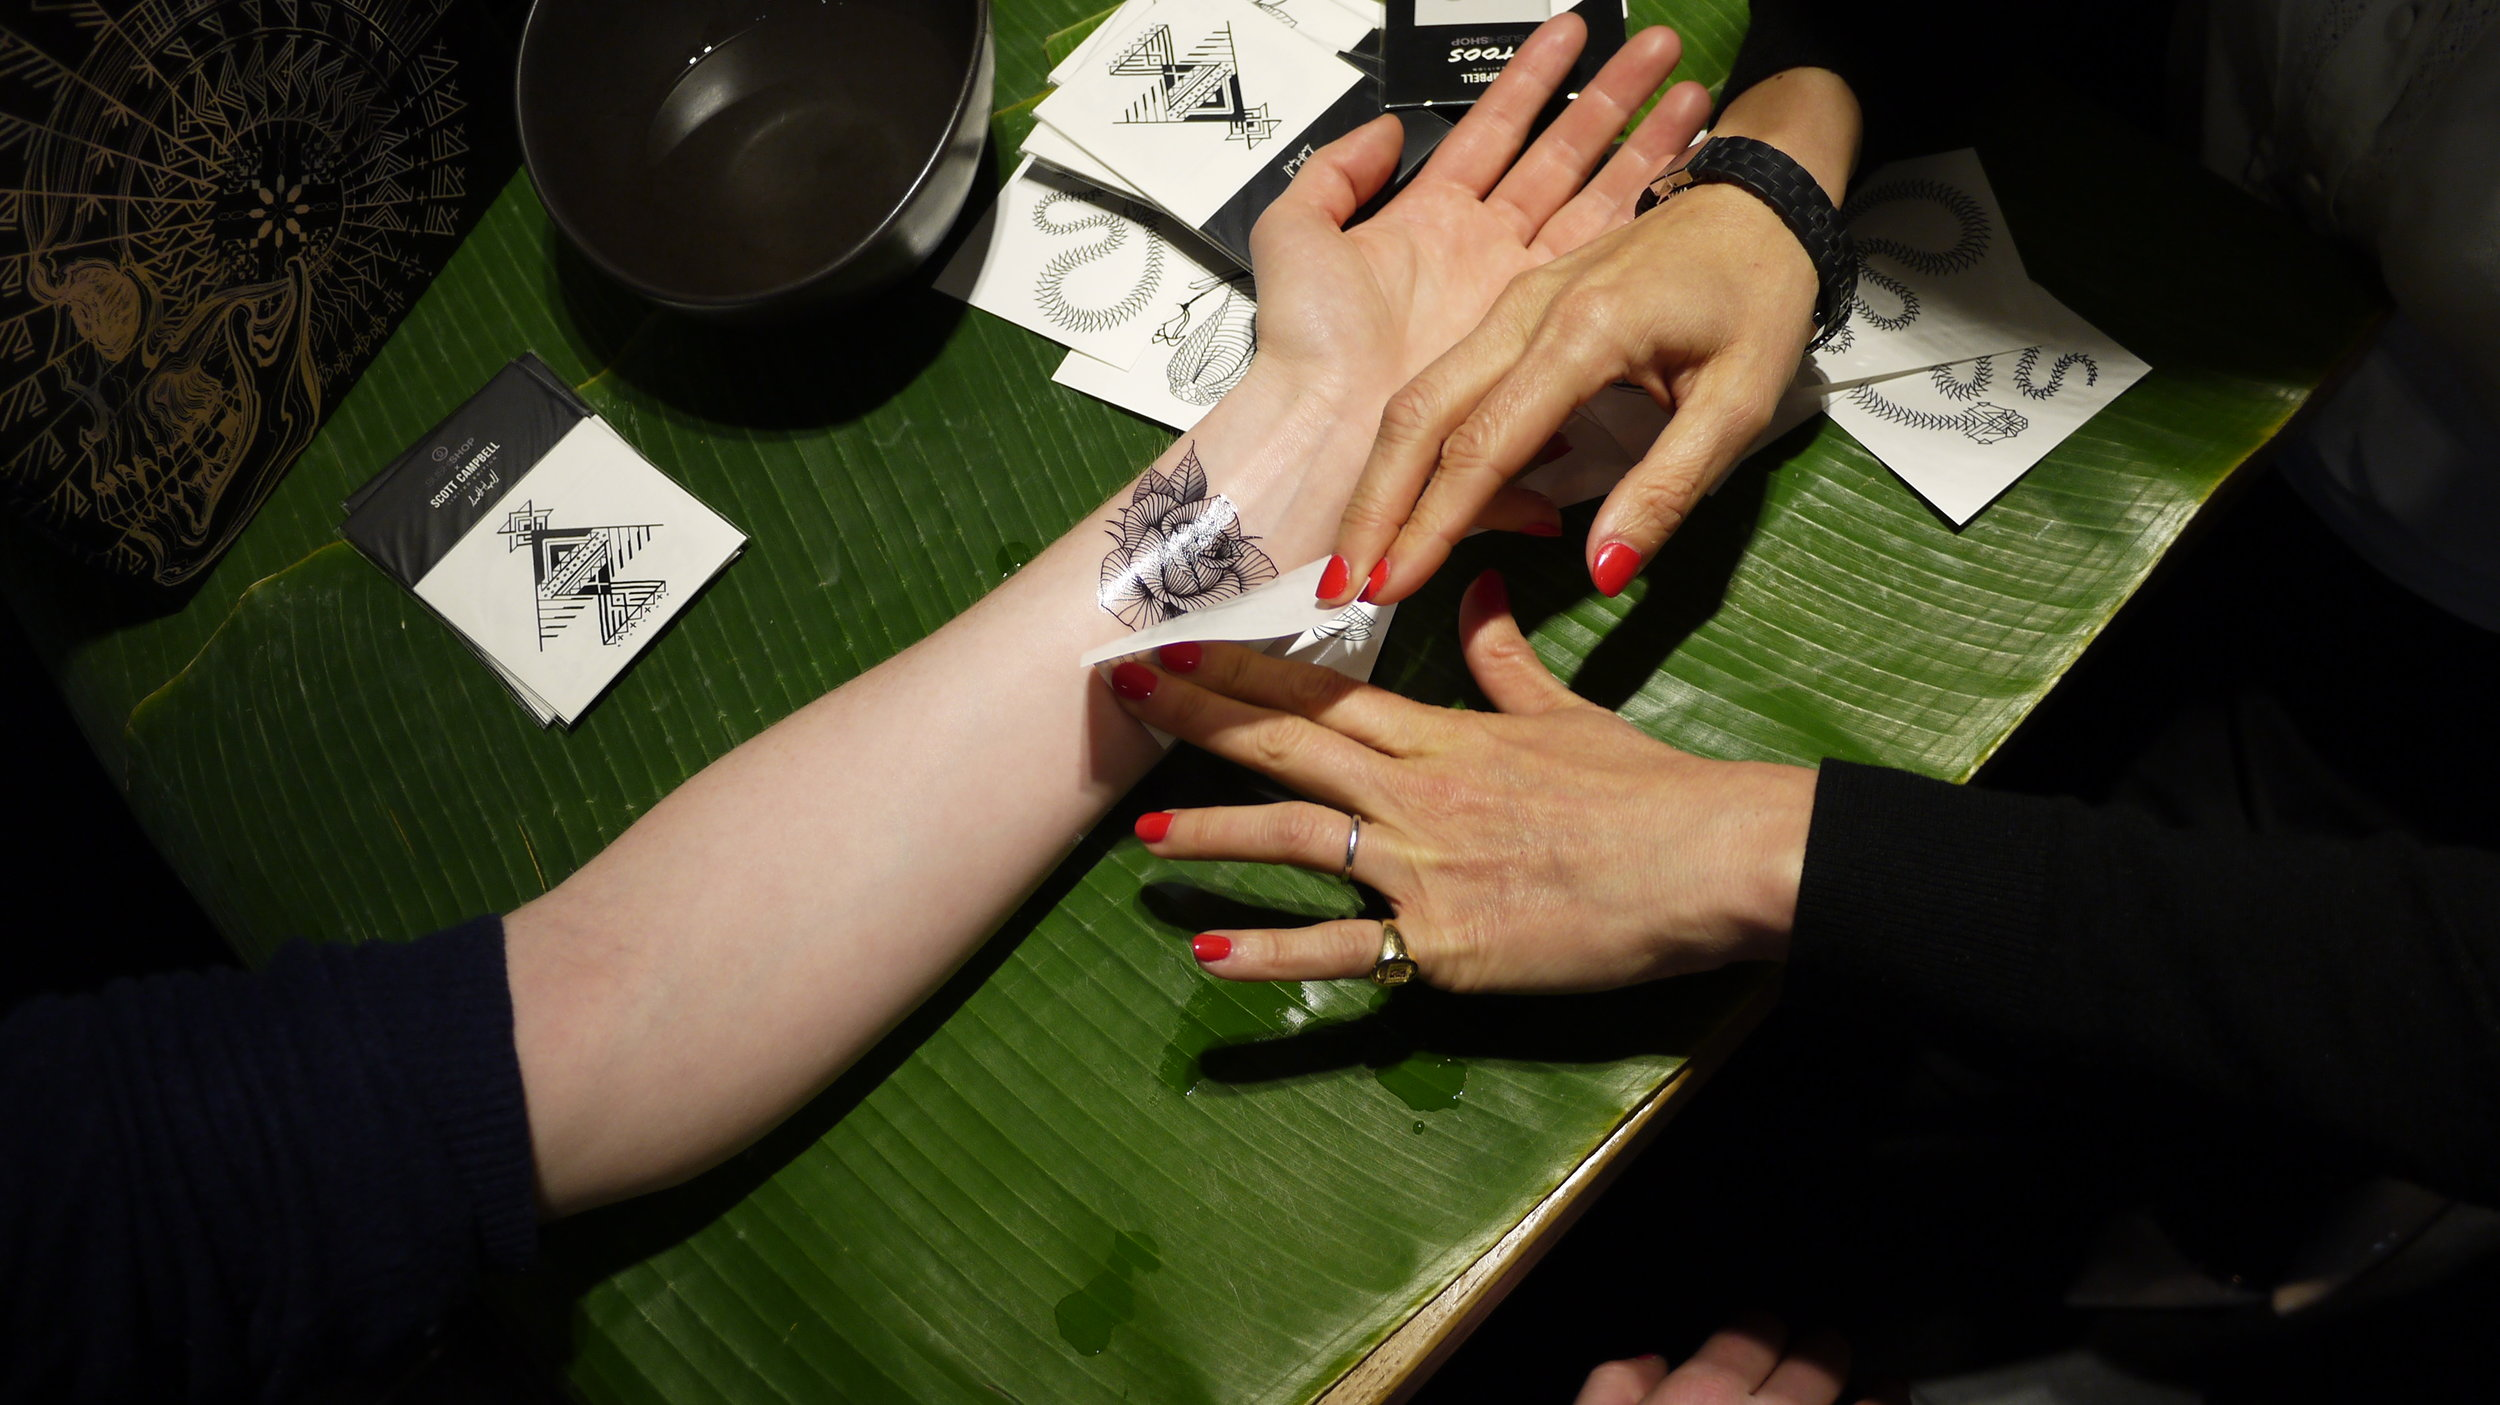 Scott Campbell temporary tattoos being applied at the Sushi Shop event